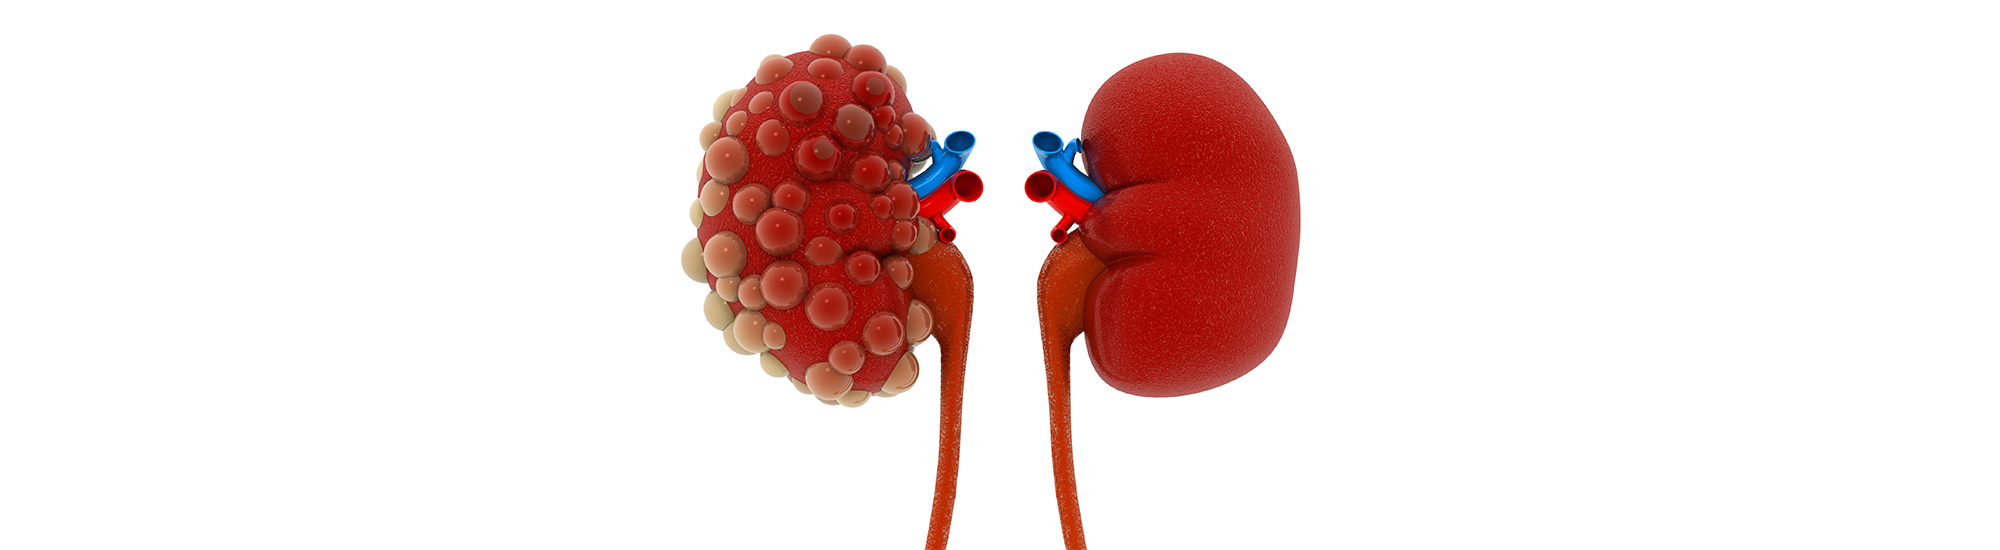 Ayurvedic treatment for What is Acute Kidney Failure